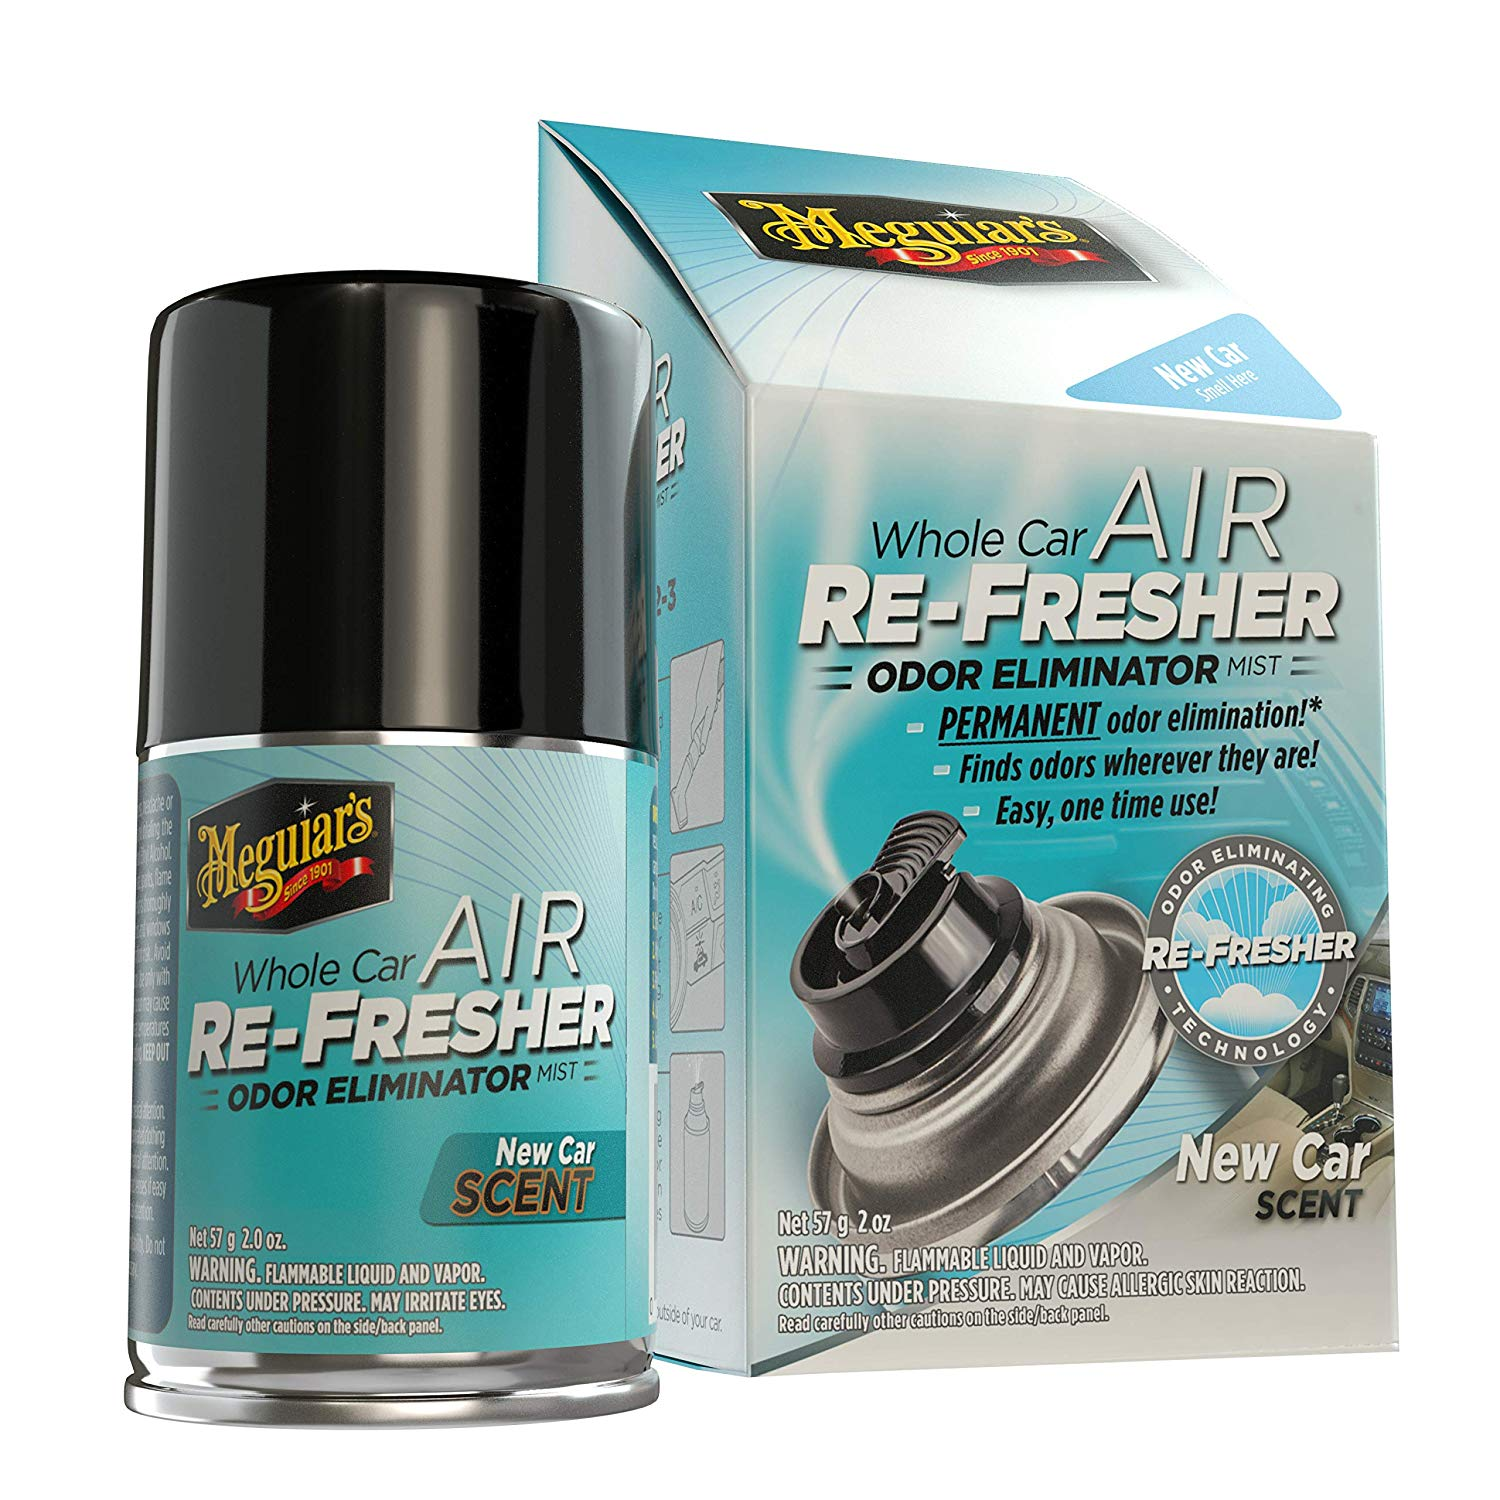 MEGUIAR'S G16402 Whole Air Re-Fresher Odor Eliminator Mist | Best Car Scents